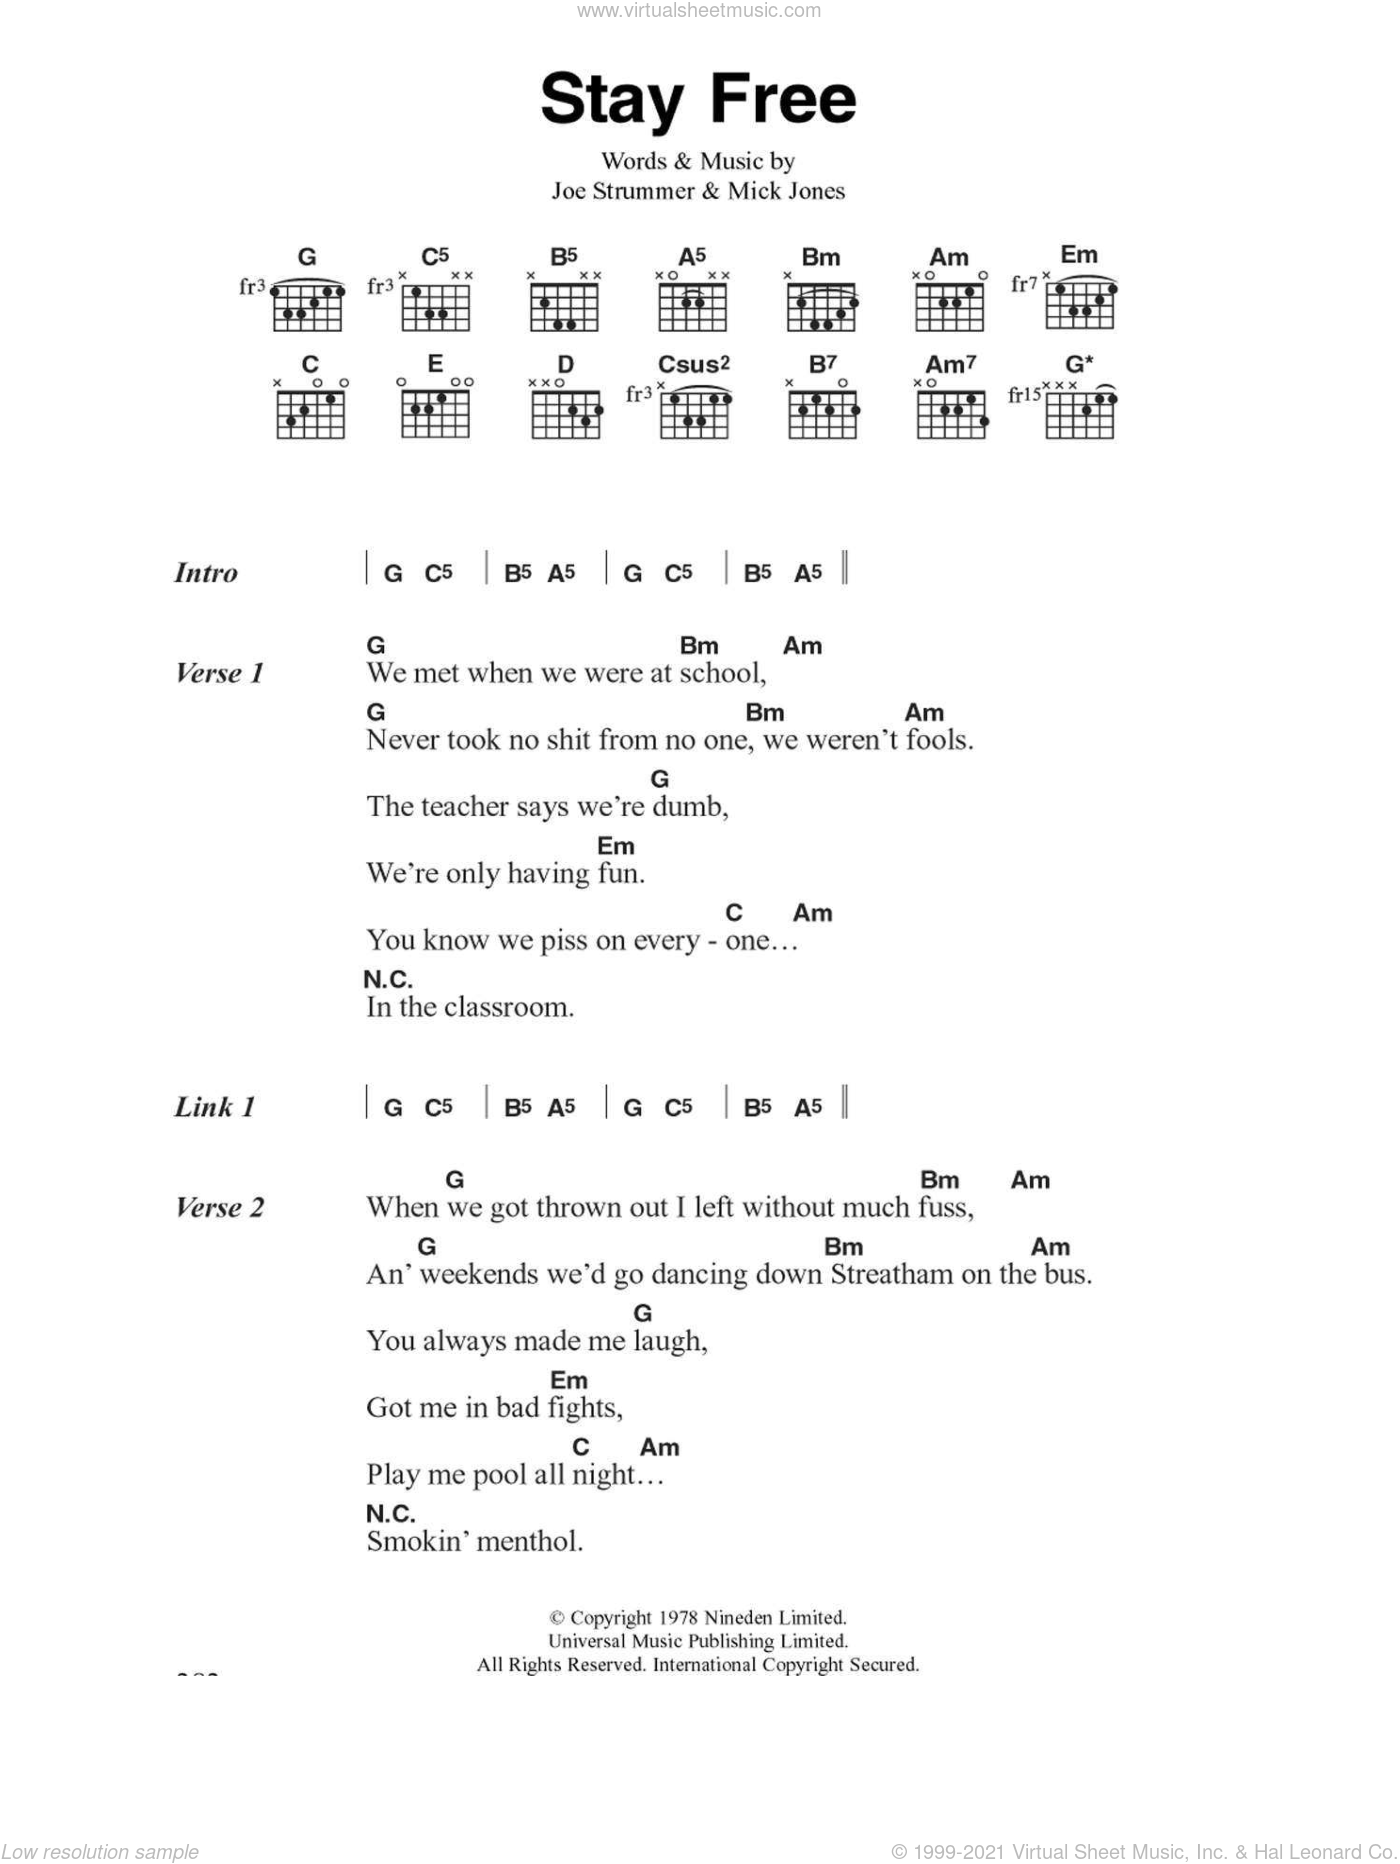 Clash - Stay Free sheet music for guitar (chords) [PDF]